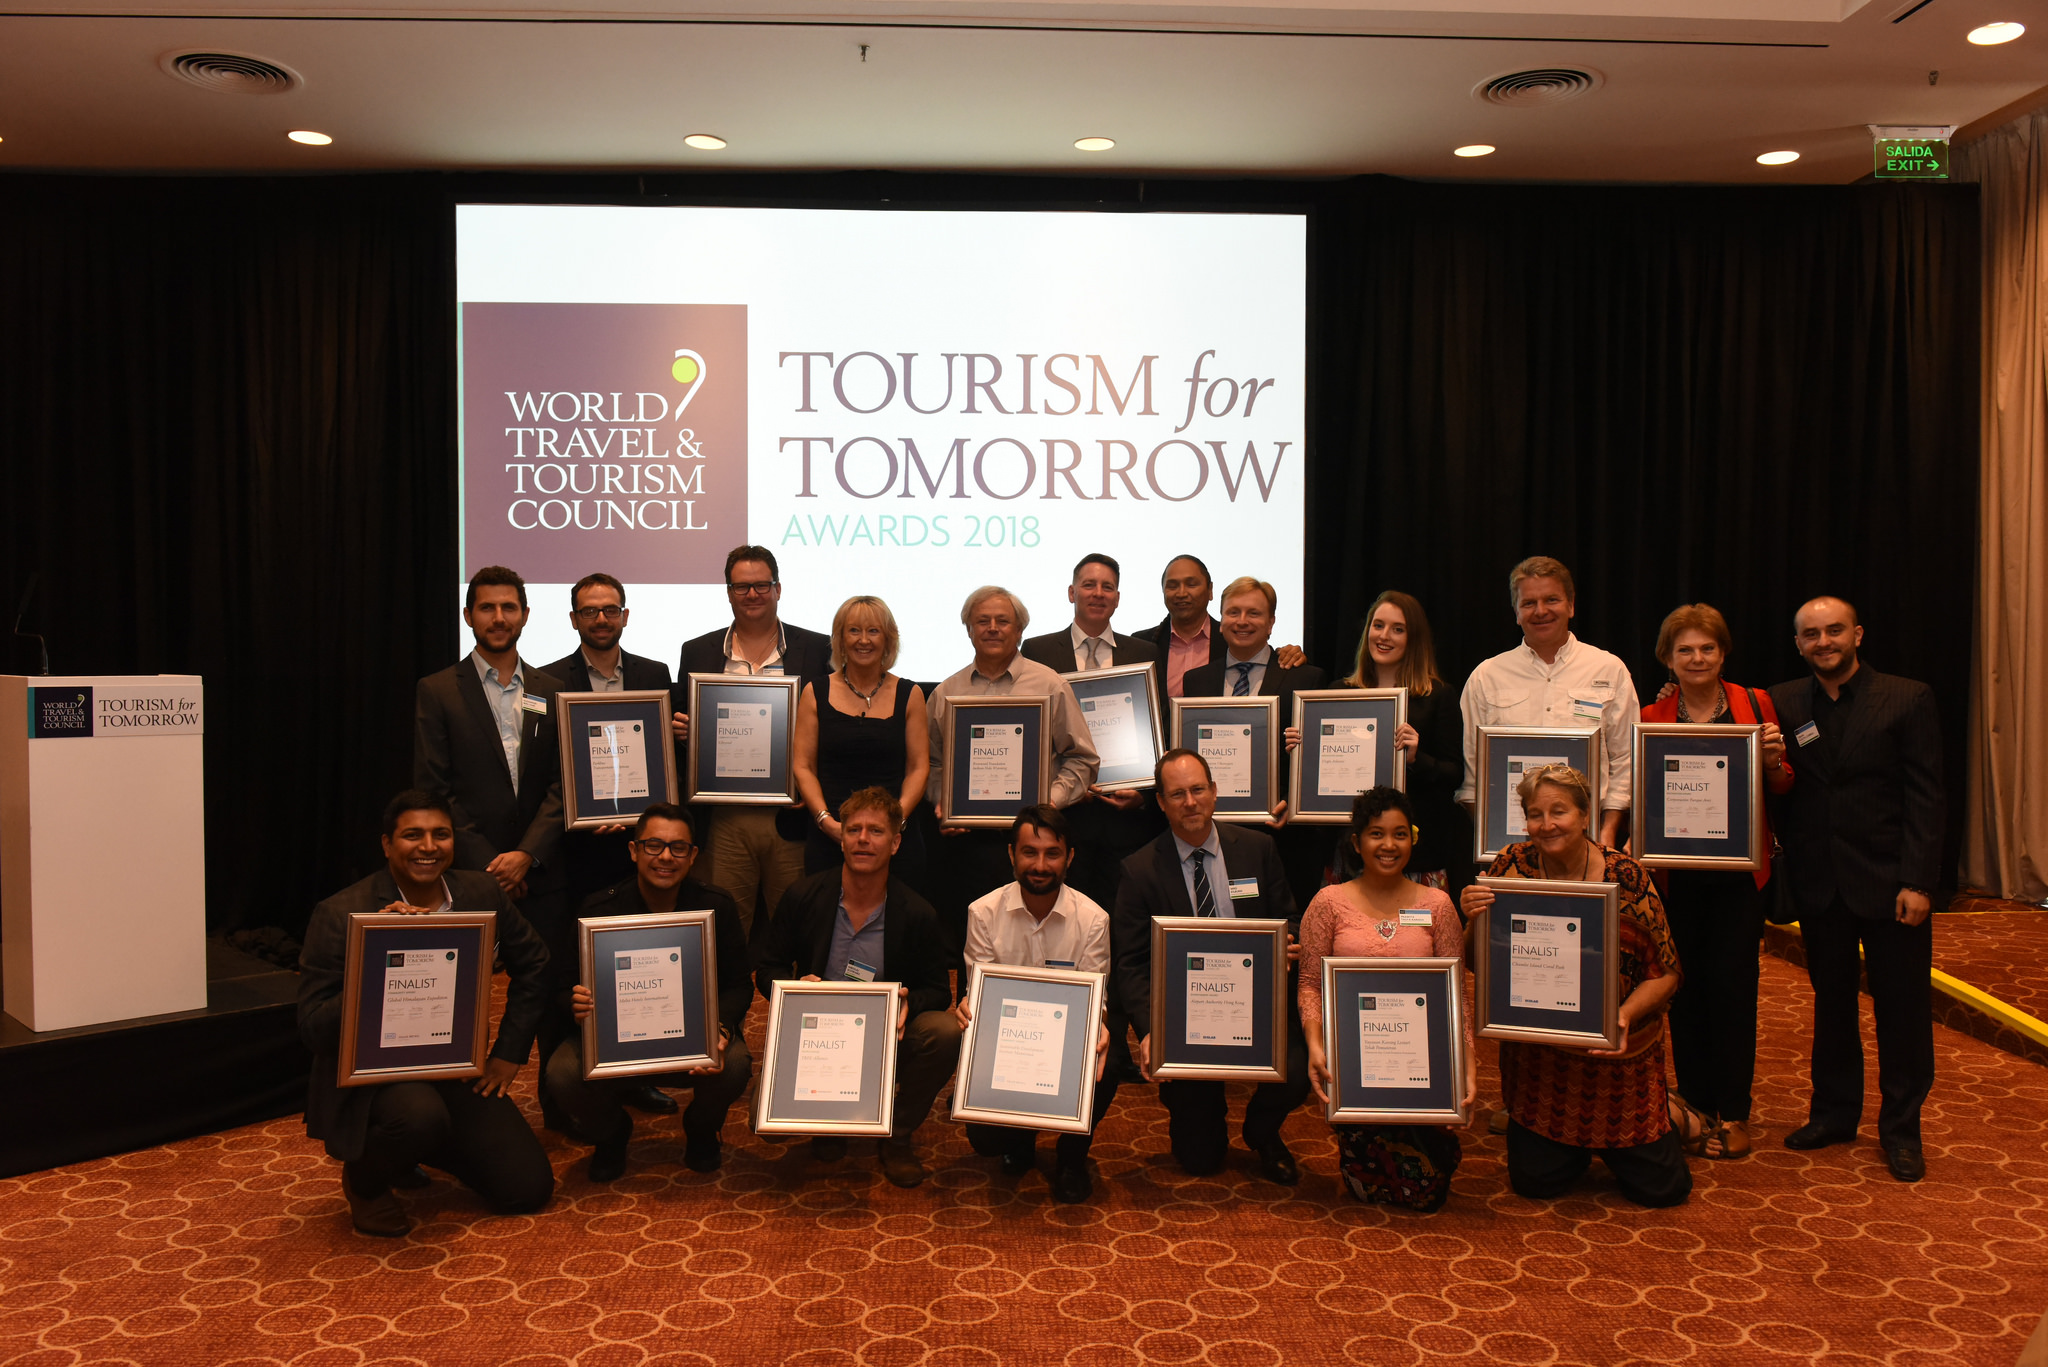 WTTC announces 2019 Tourism for Tomorrow Awards finalists